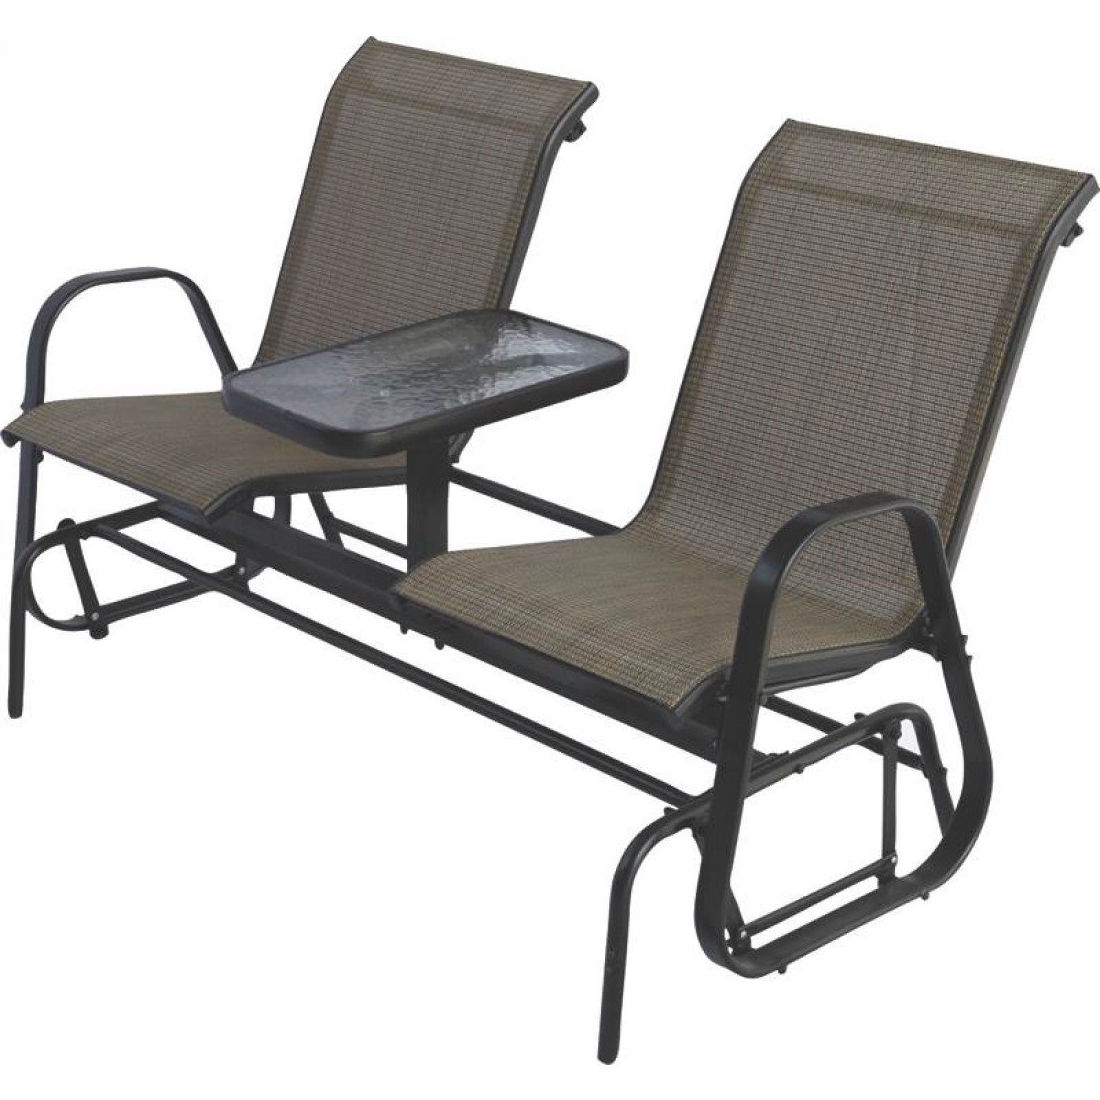 Glider Patio Chairs 2 Person Outdoor Patio Furniture Glider Chairs With